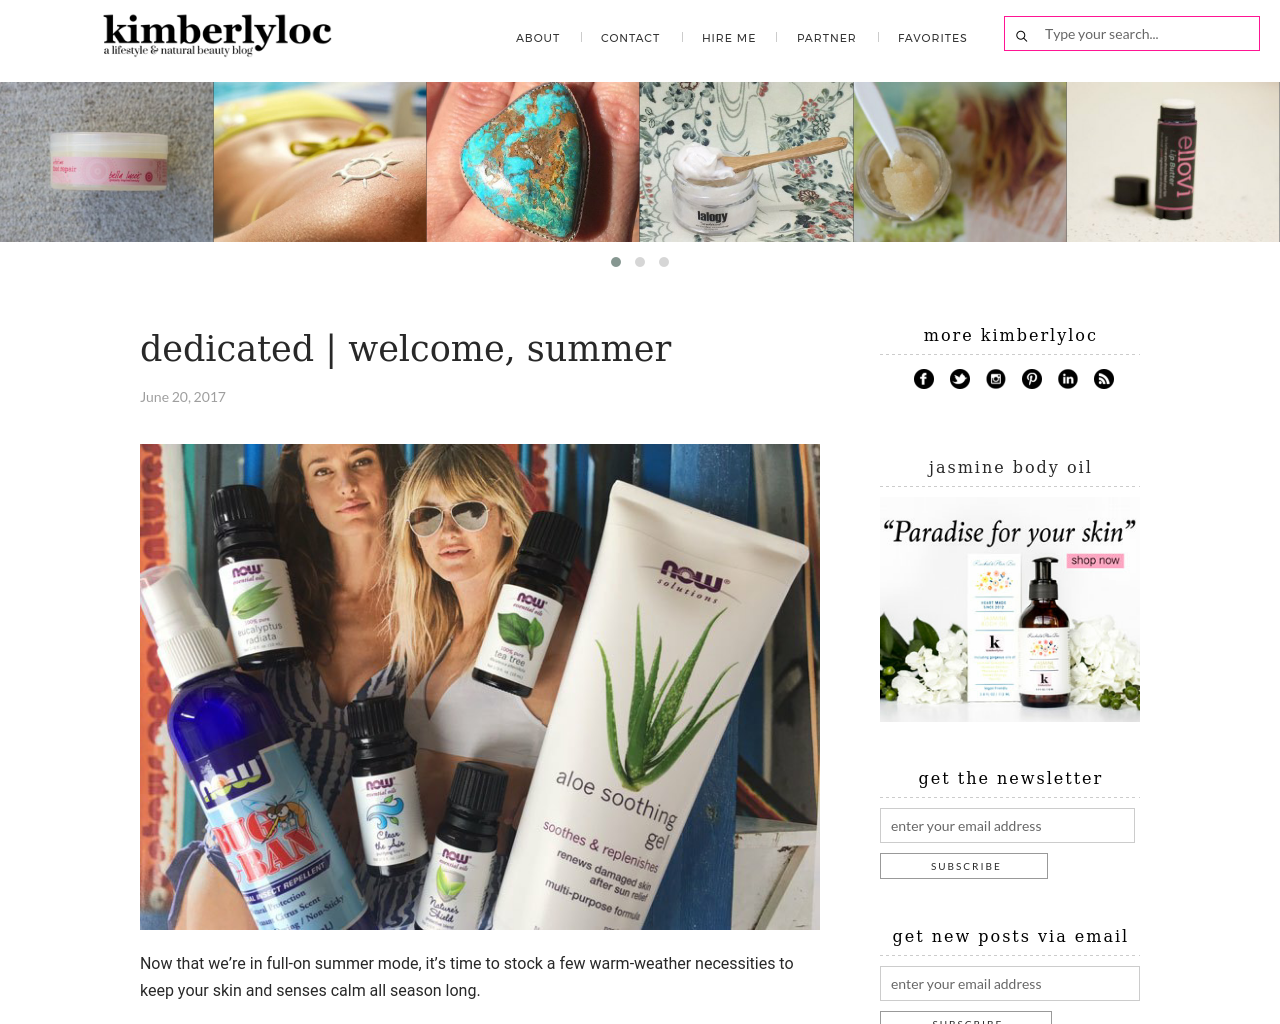 kimberlyloc-Advertising-Reviews-Pricing